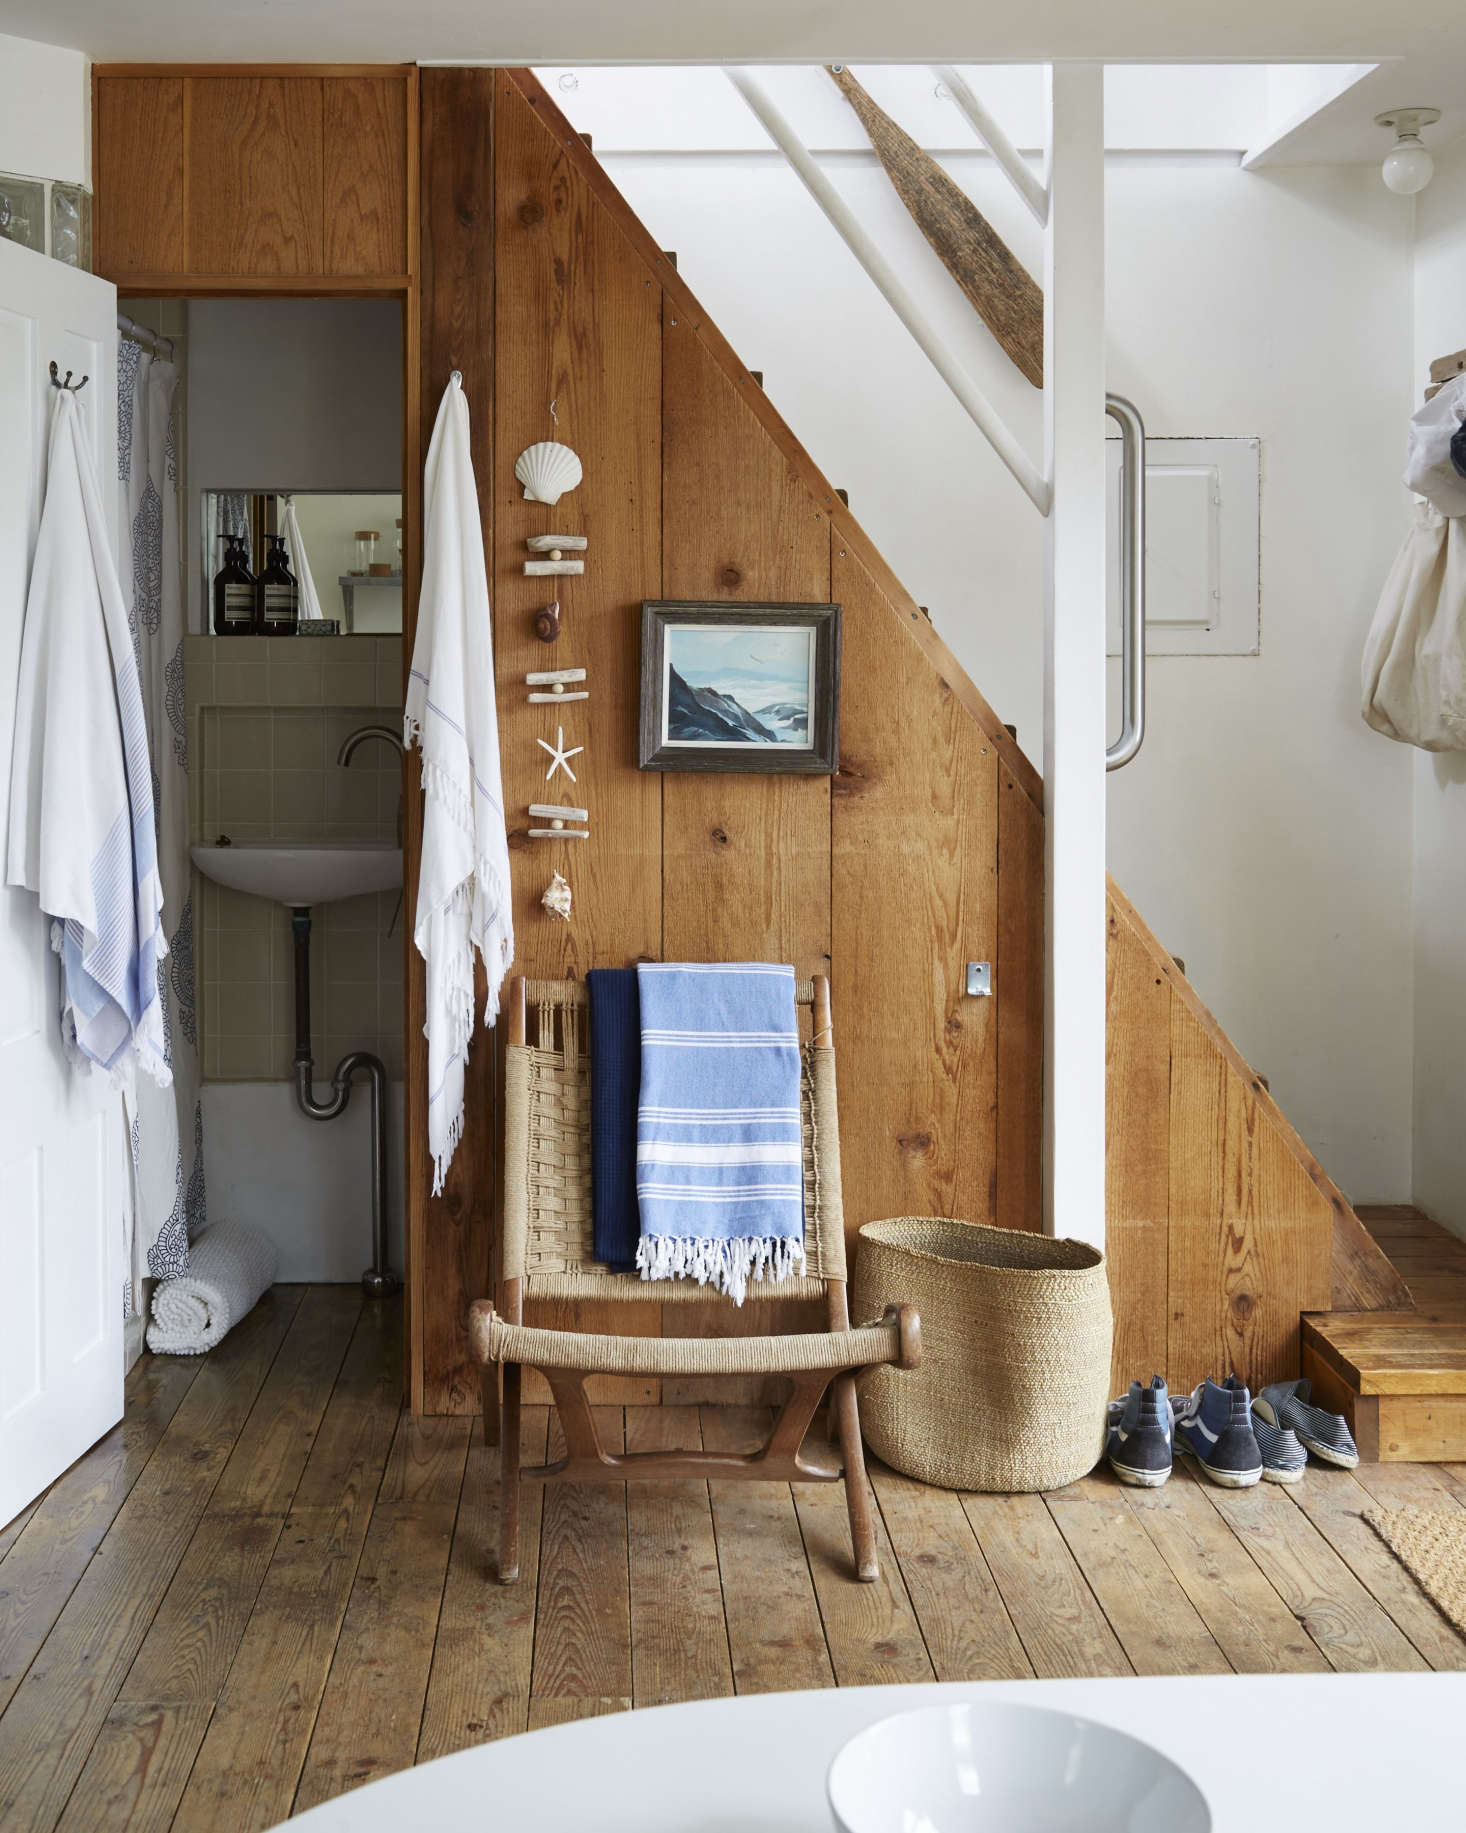 Designer Glenn Ban leaves shoes right by the door in his summer rental. SeeA Beach Cottage in Provincetown, Styled for Budget-Minded Summer Living. Photograph by Stephen Johnson.